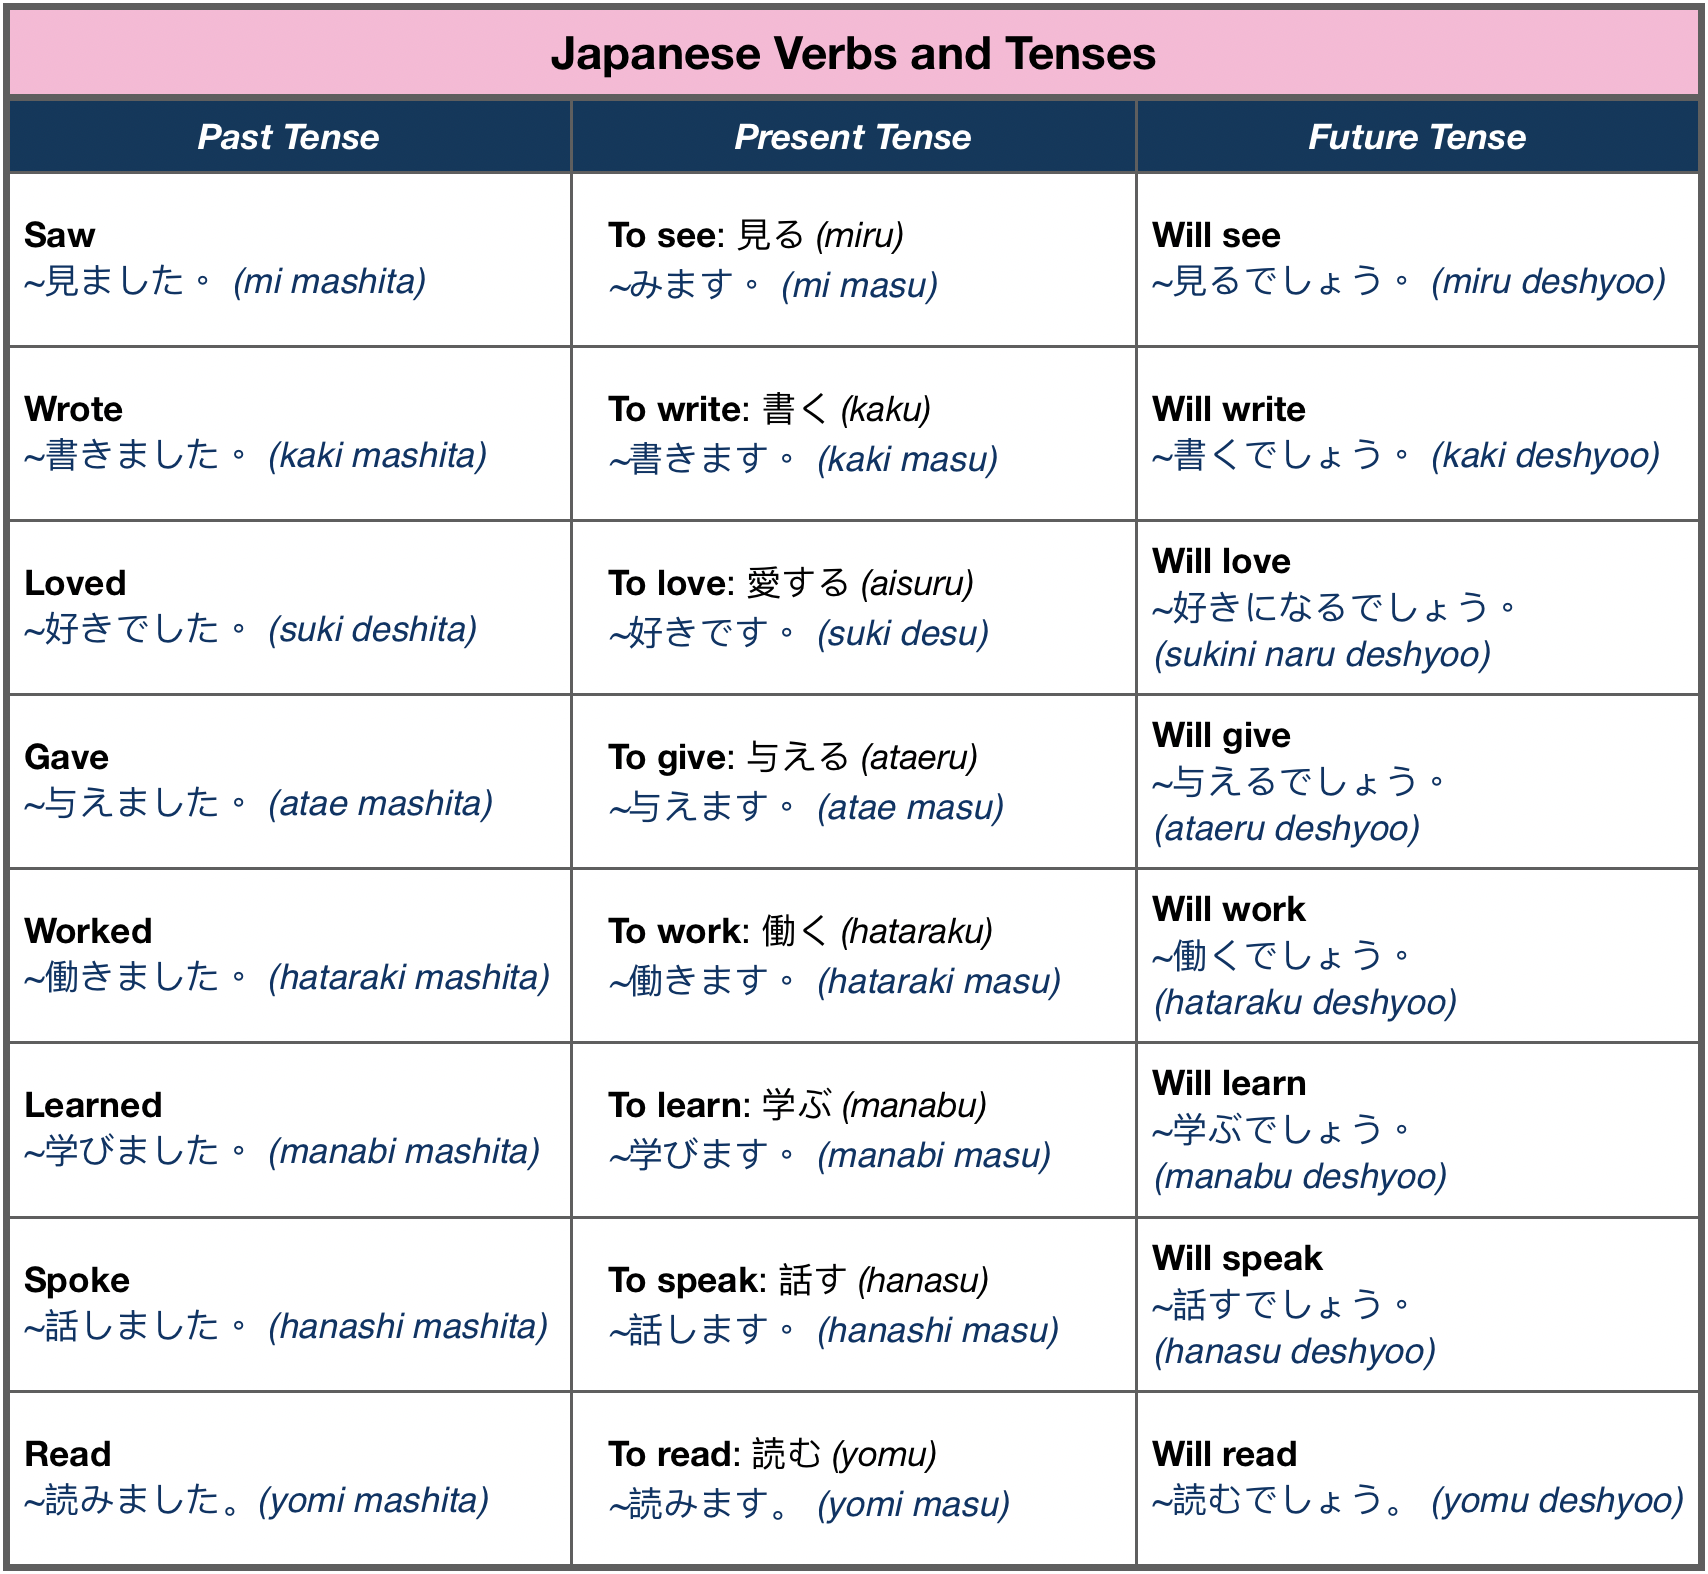 Japanese Verbs And Tenses